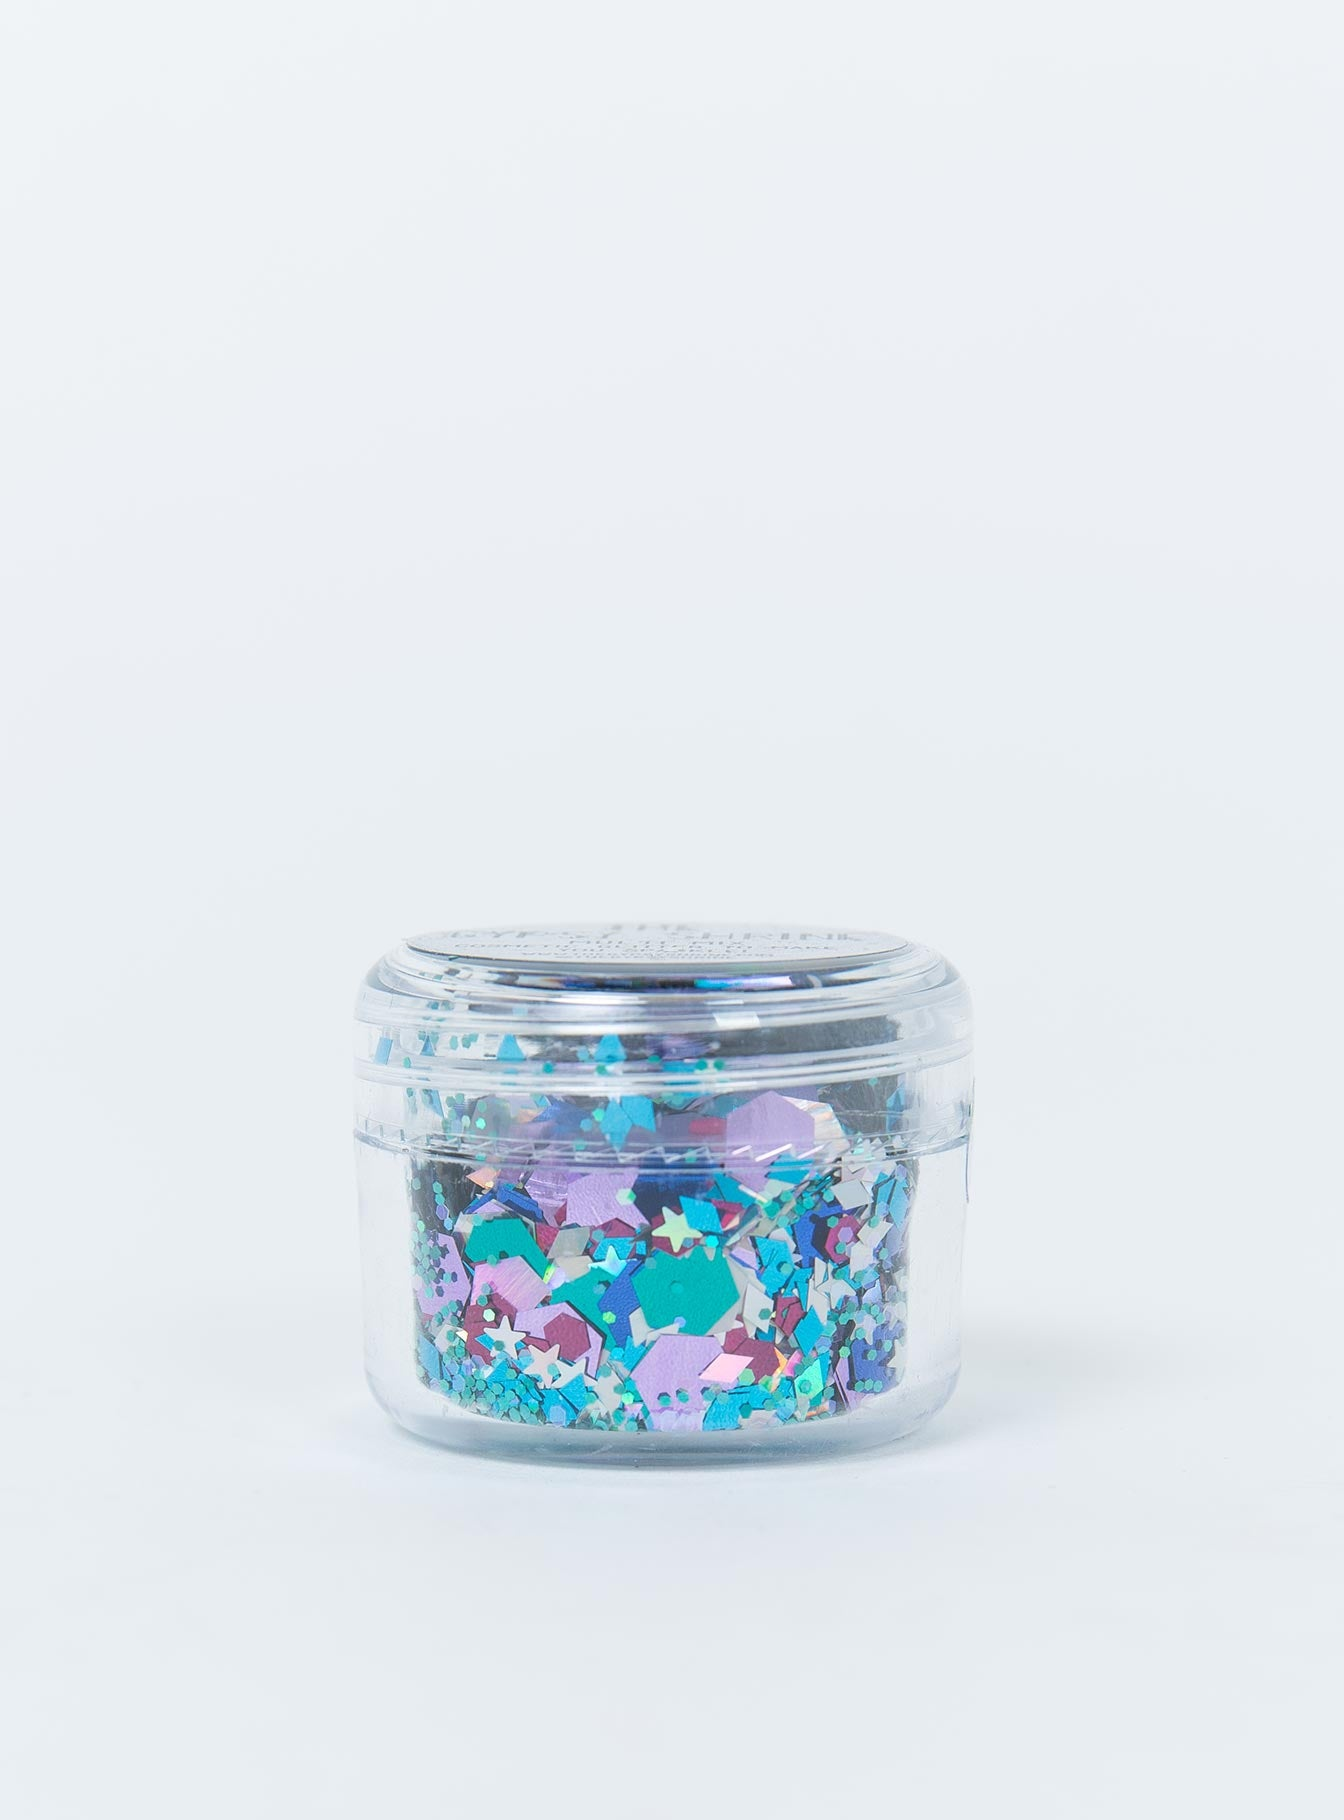 The Gypsy Shrine Multi Mix Glitter